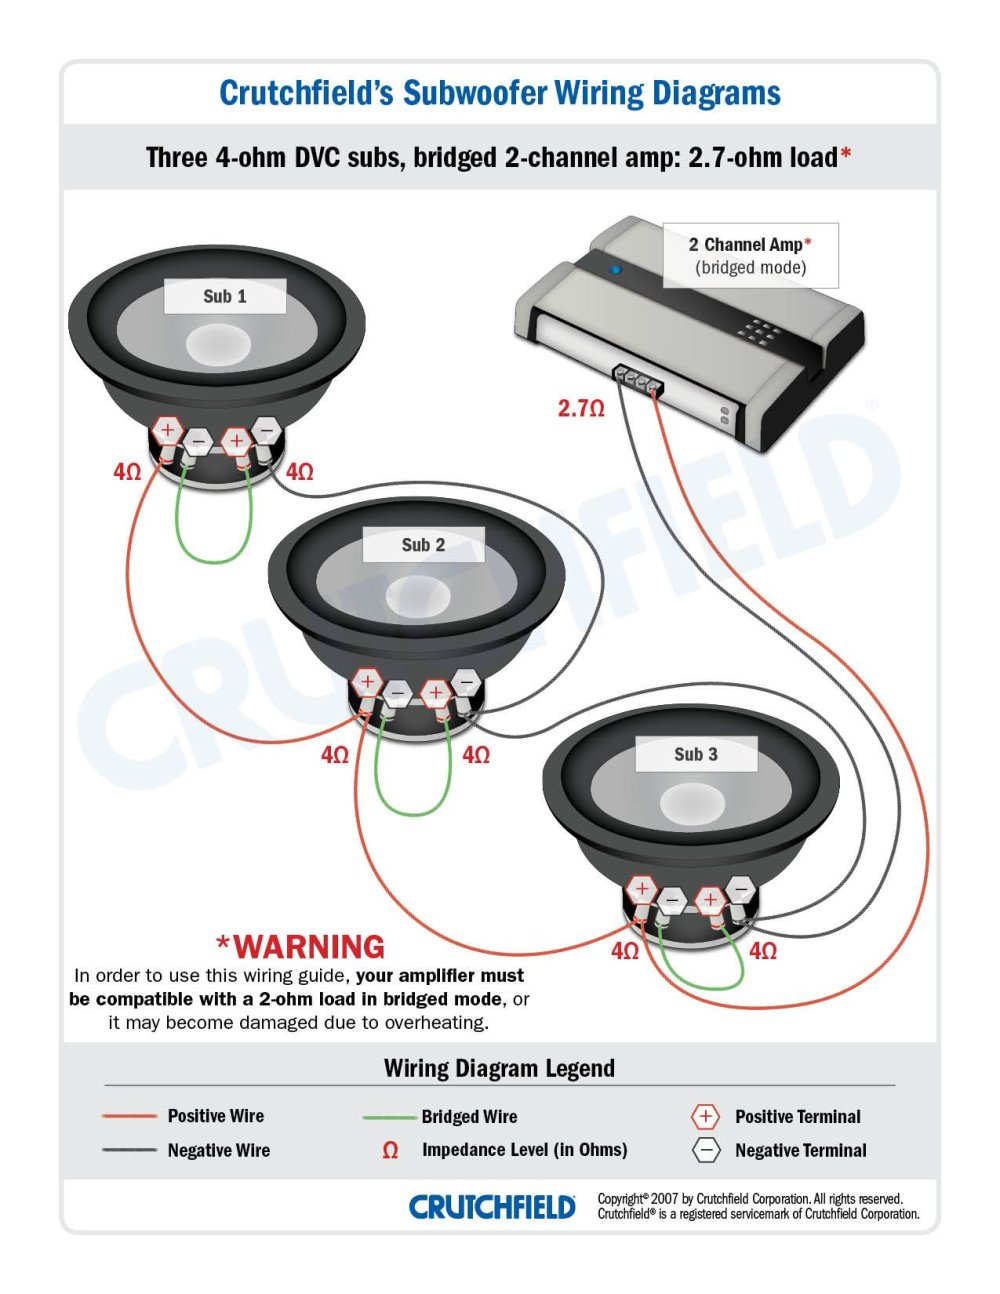 medium resolution of 3 dvc 4 ohm 2 ch low imp subwoofer wiring diagrams 4 ohm dvc wiring